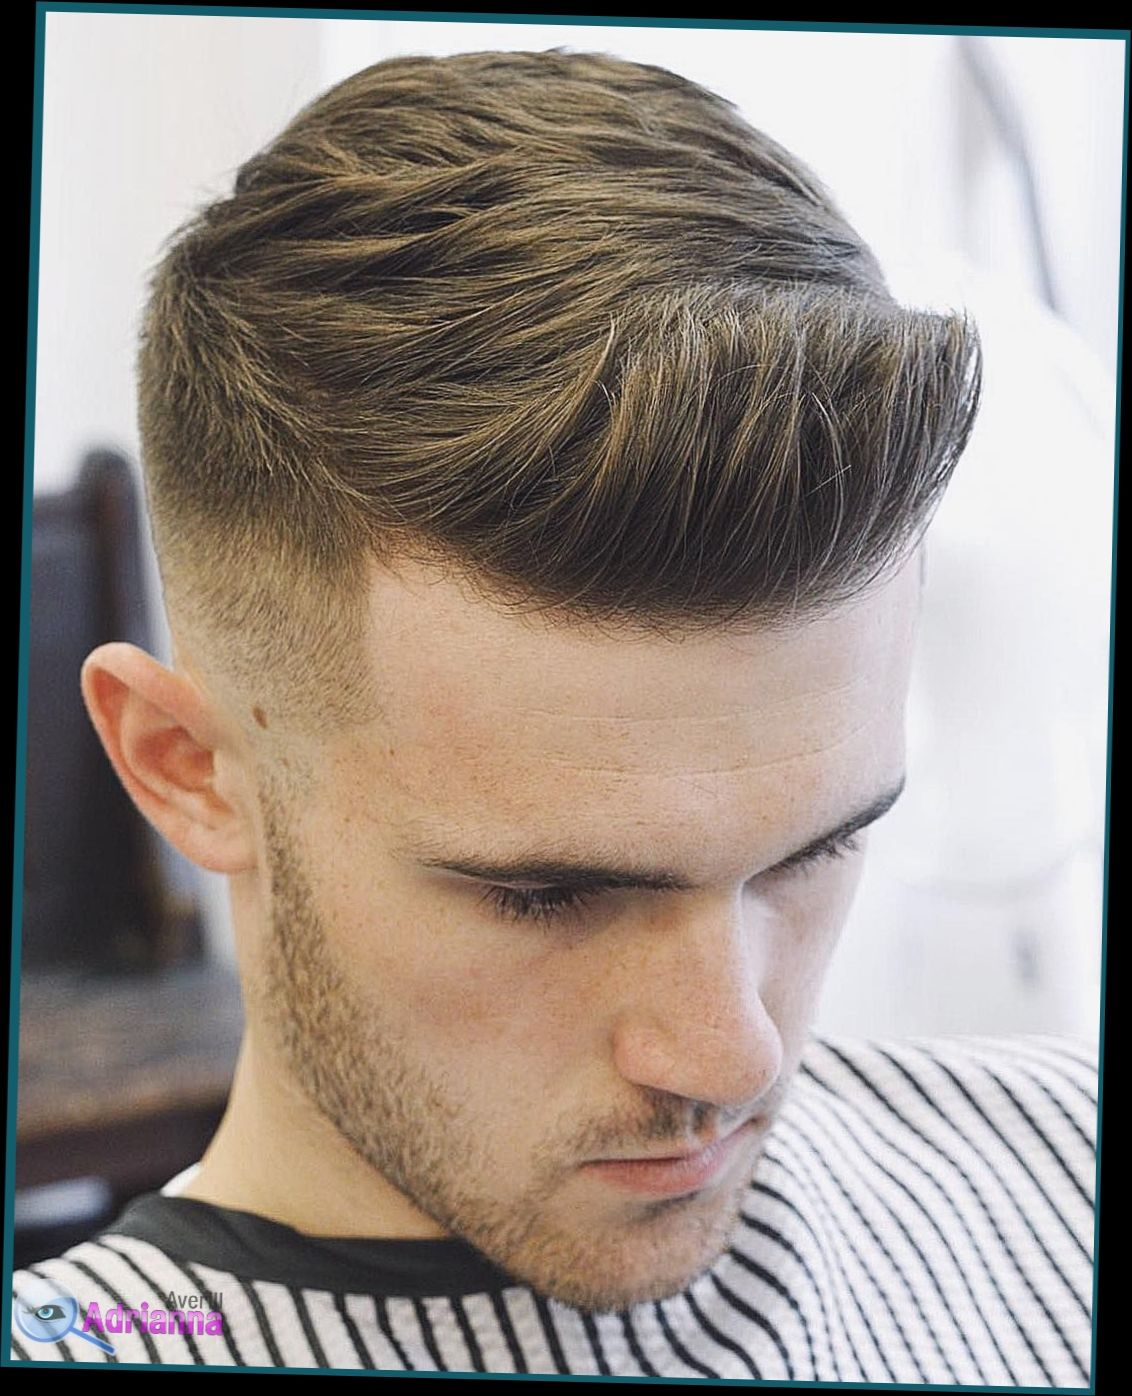 new hairstyle for boys 2018 || the best new men's haircuts